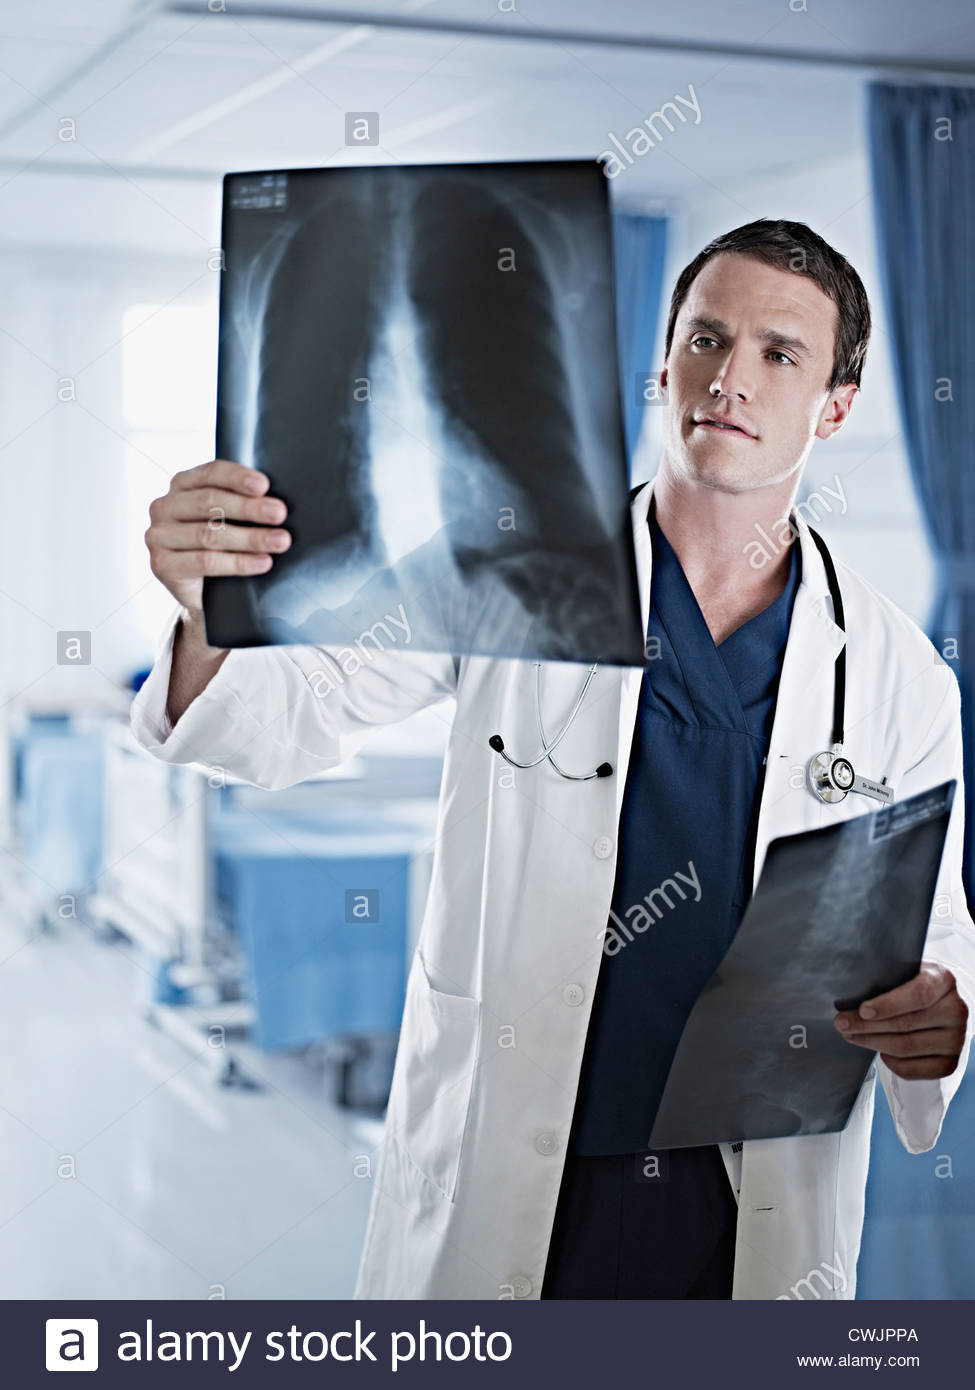 Doctor examining x-rays in hospital room - Stock Image